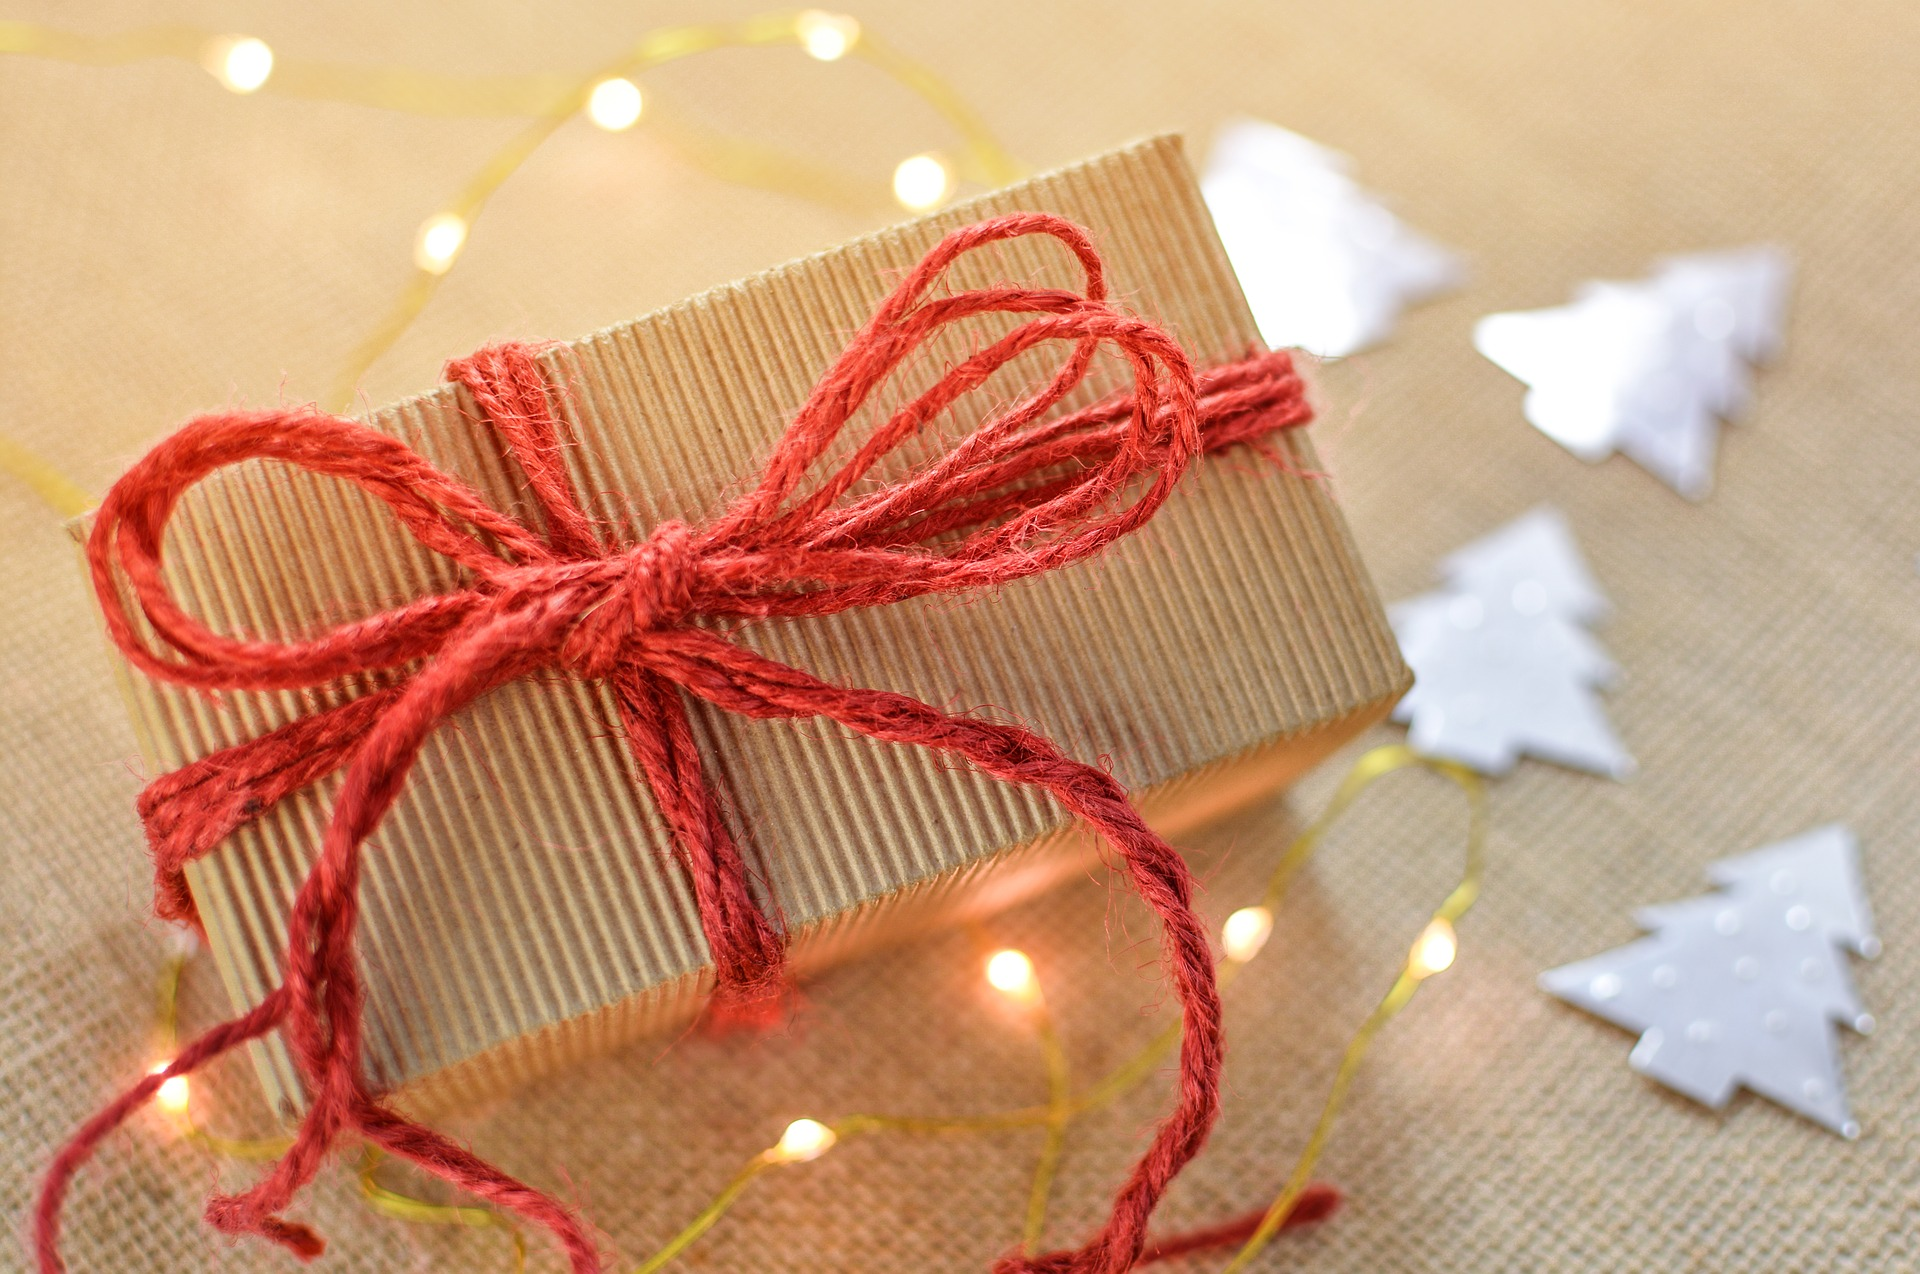 A ROUND-UP OF THE BEST CHRISTMAS GIFTS TO BUY - Dubai Confidential